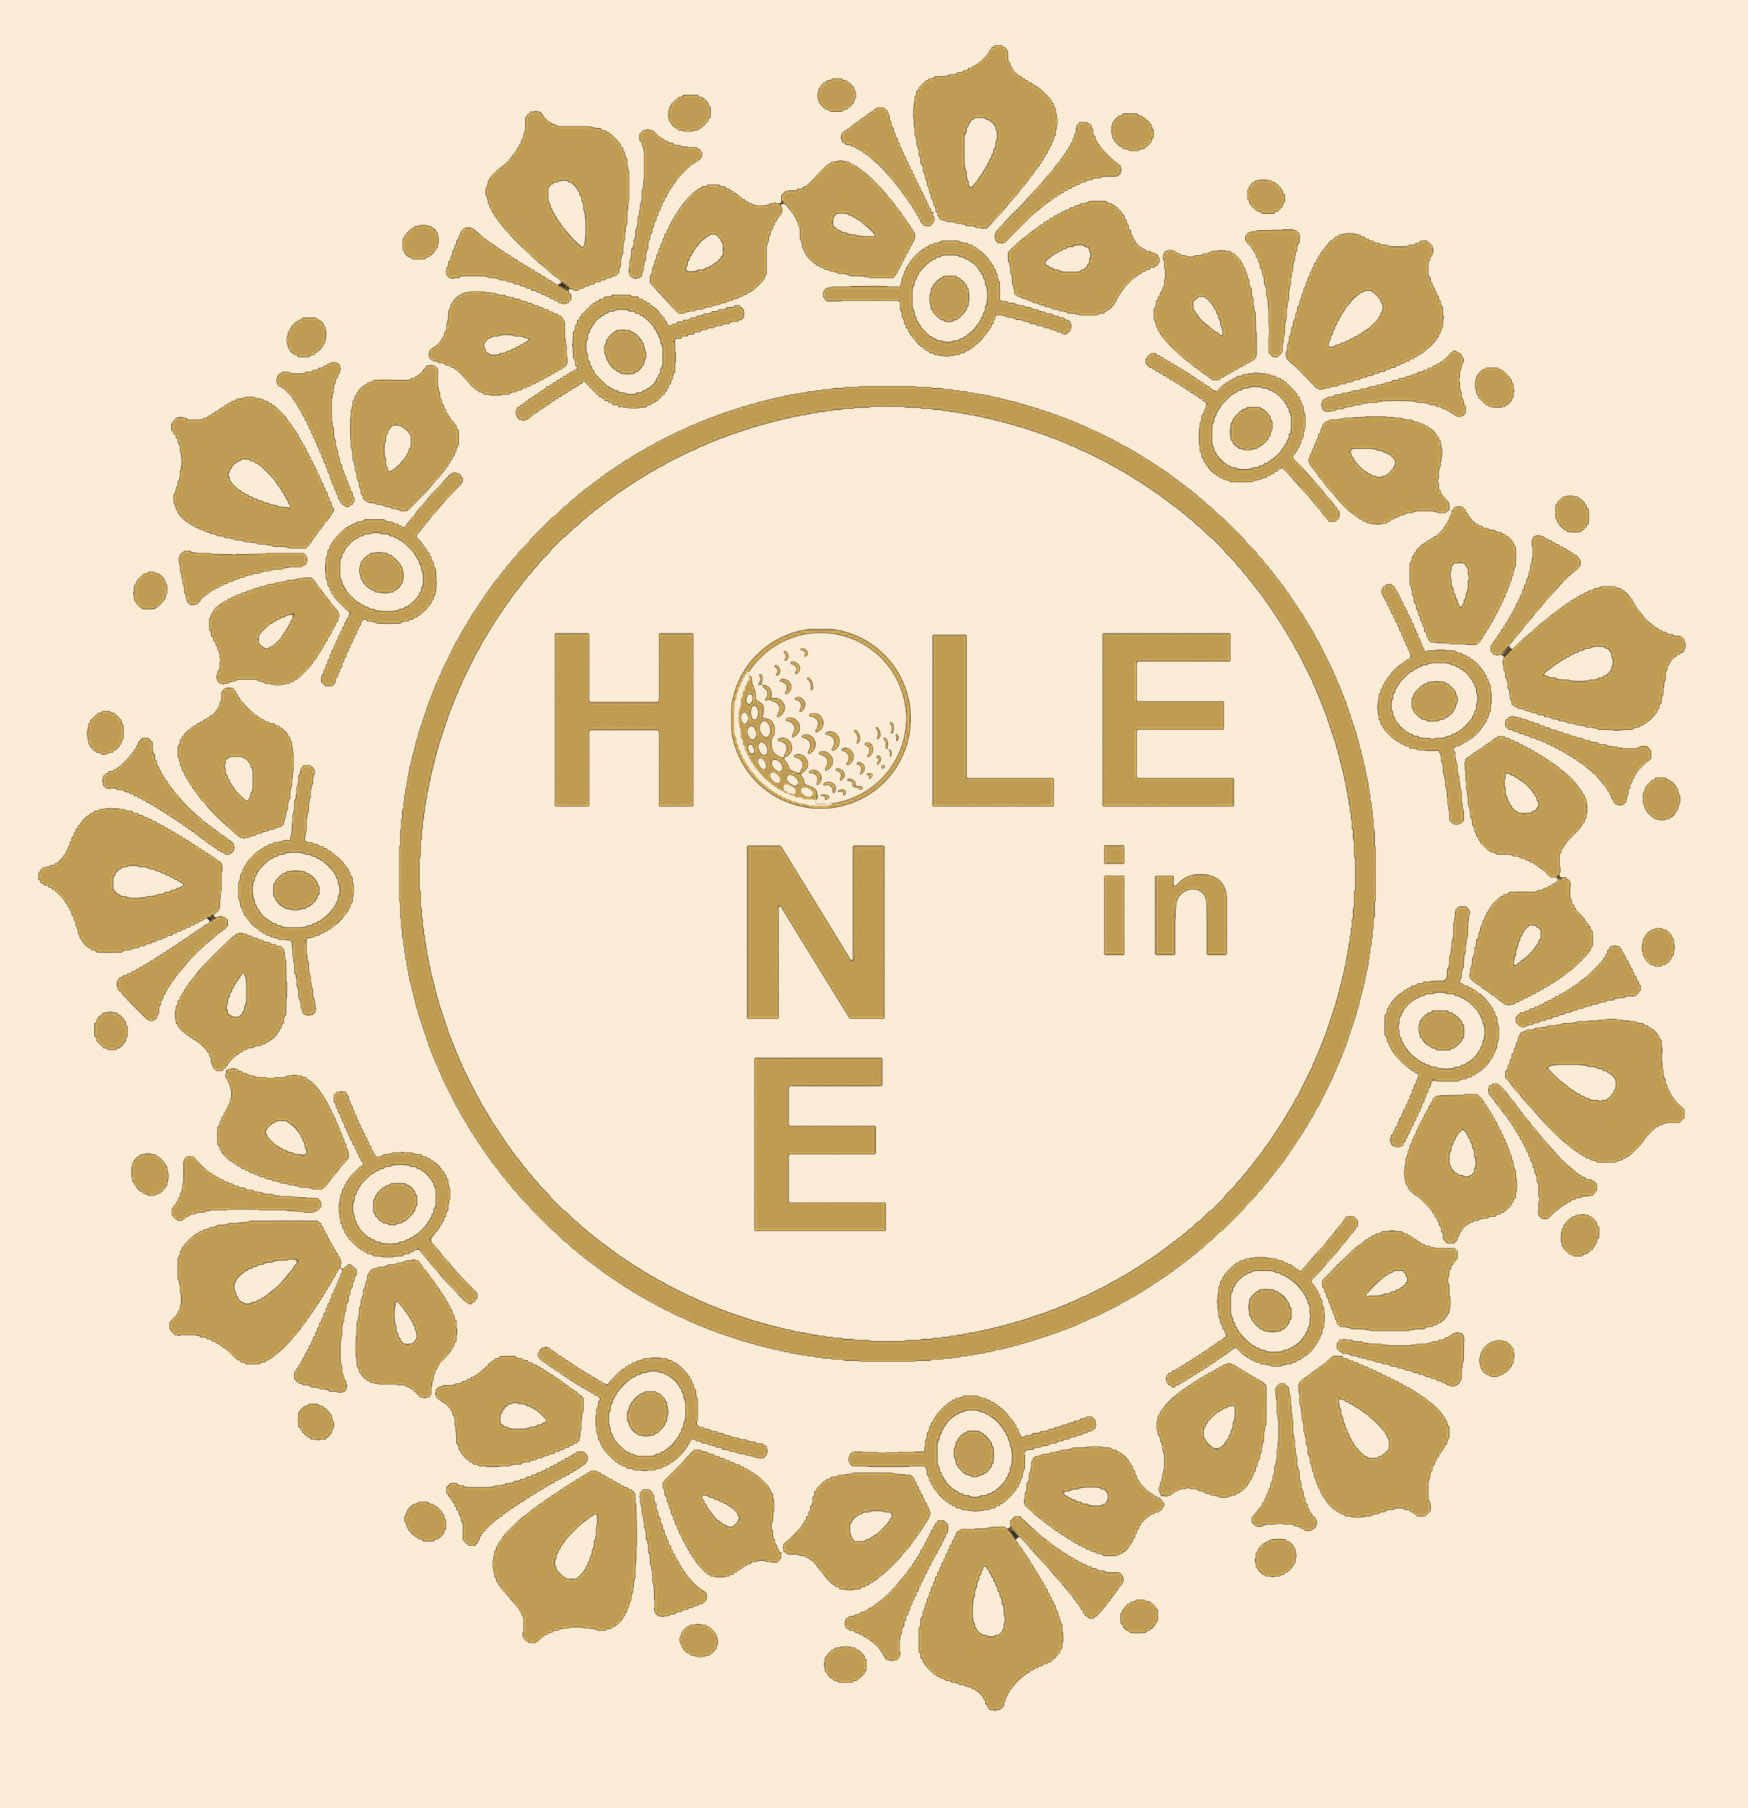 Logo gold hole in One gold Hi